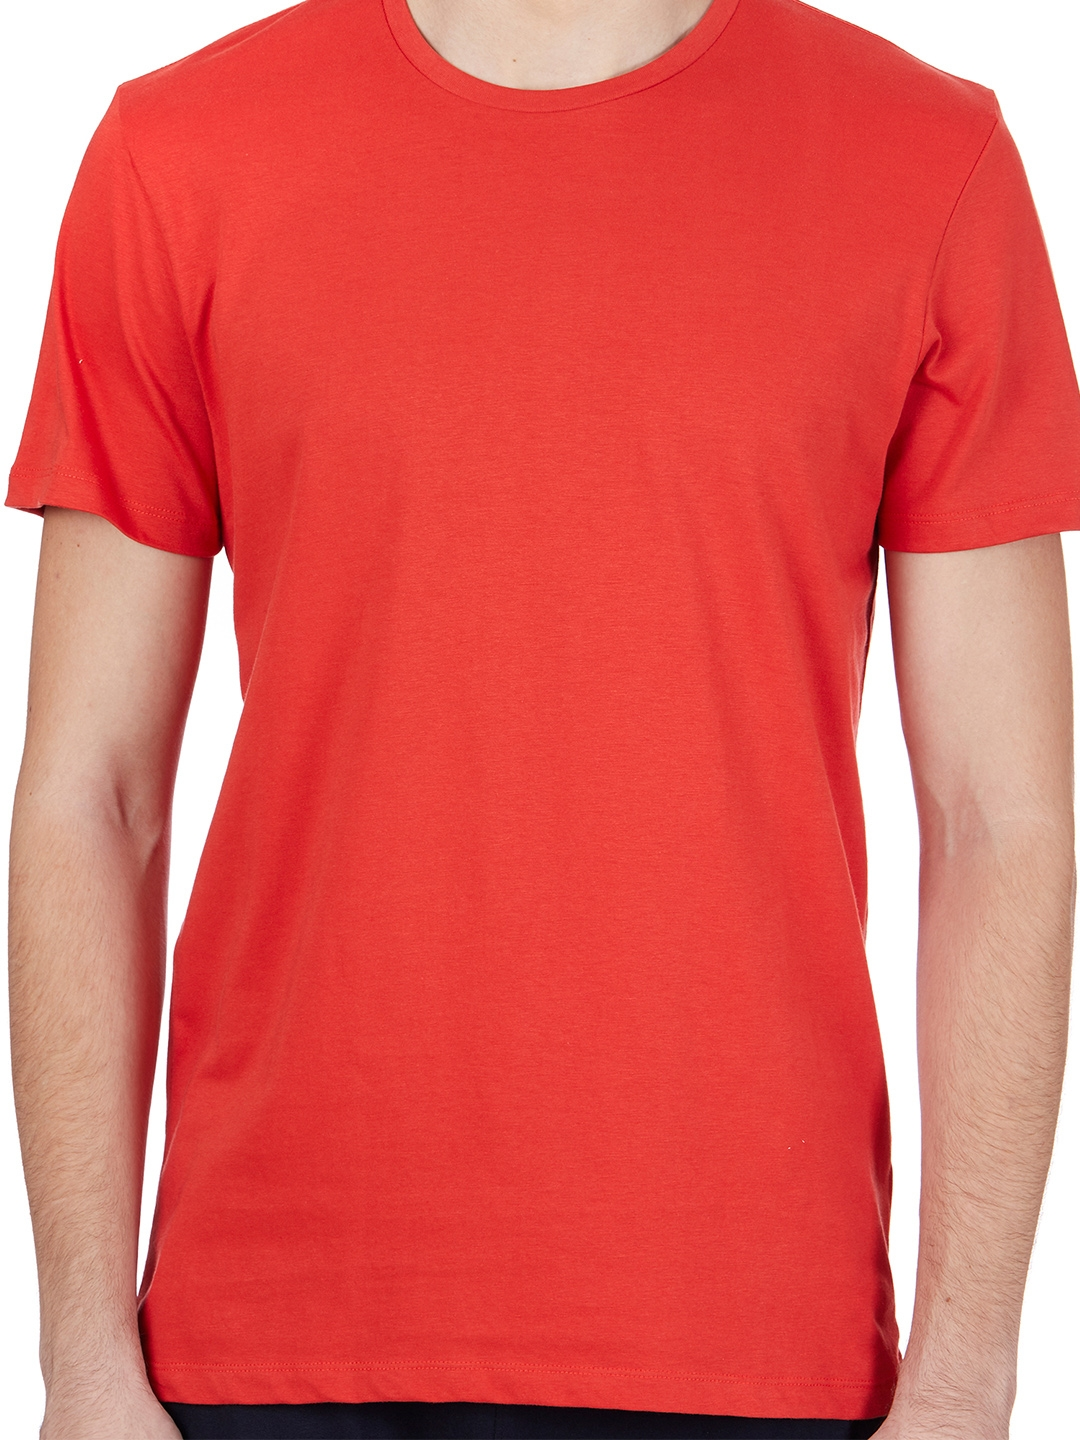 baadd9402 Buy Free Authority Men Red Solid Round Neck T Shirt - Tshirts for ...